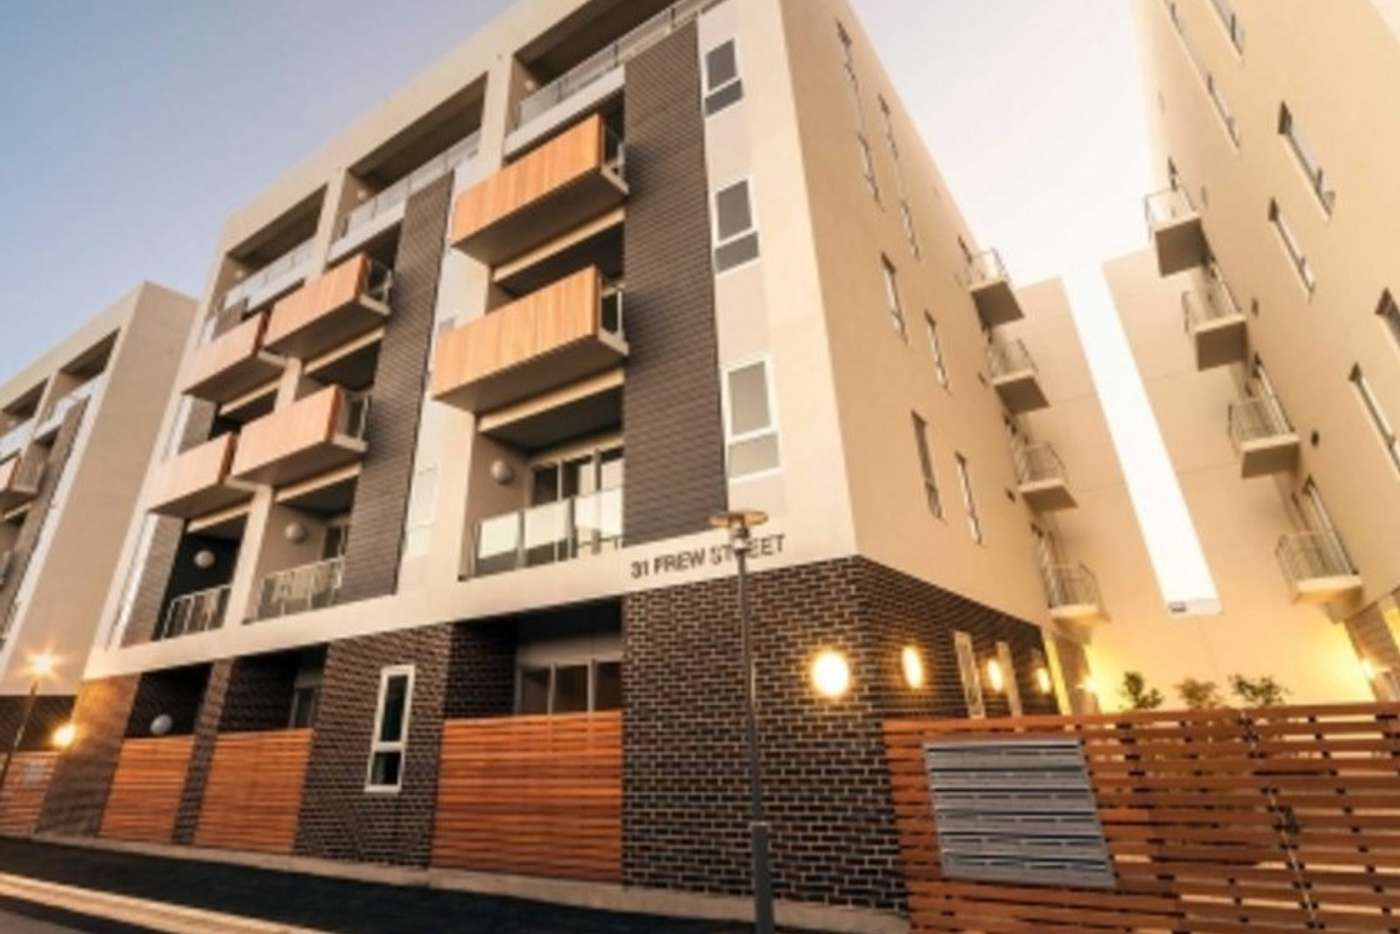 Main view of Homely apartment listing, 201/31 Frew Street, Adelaide SA 5000